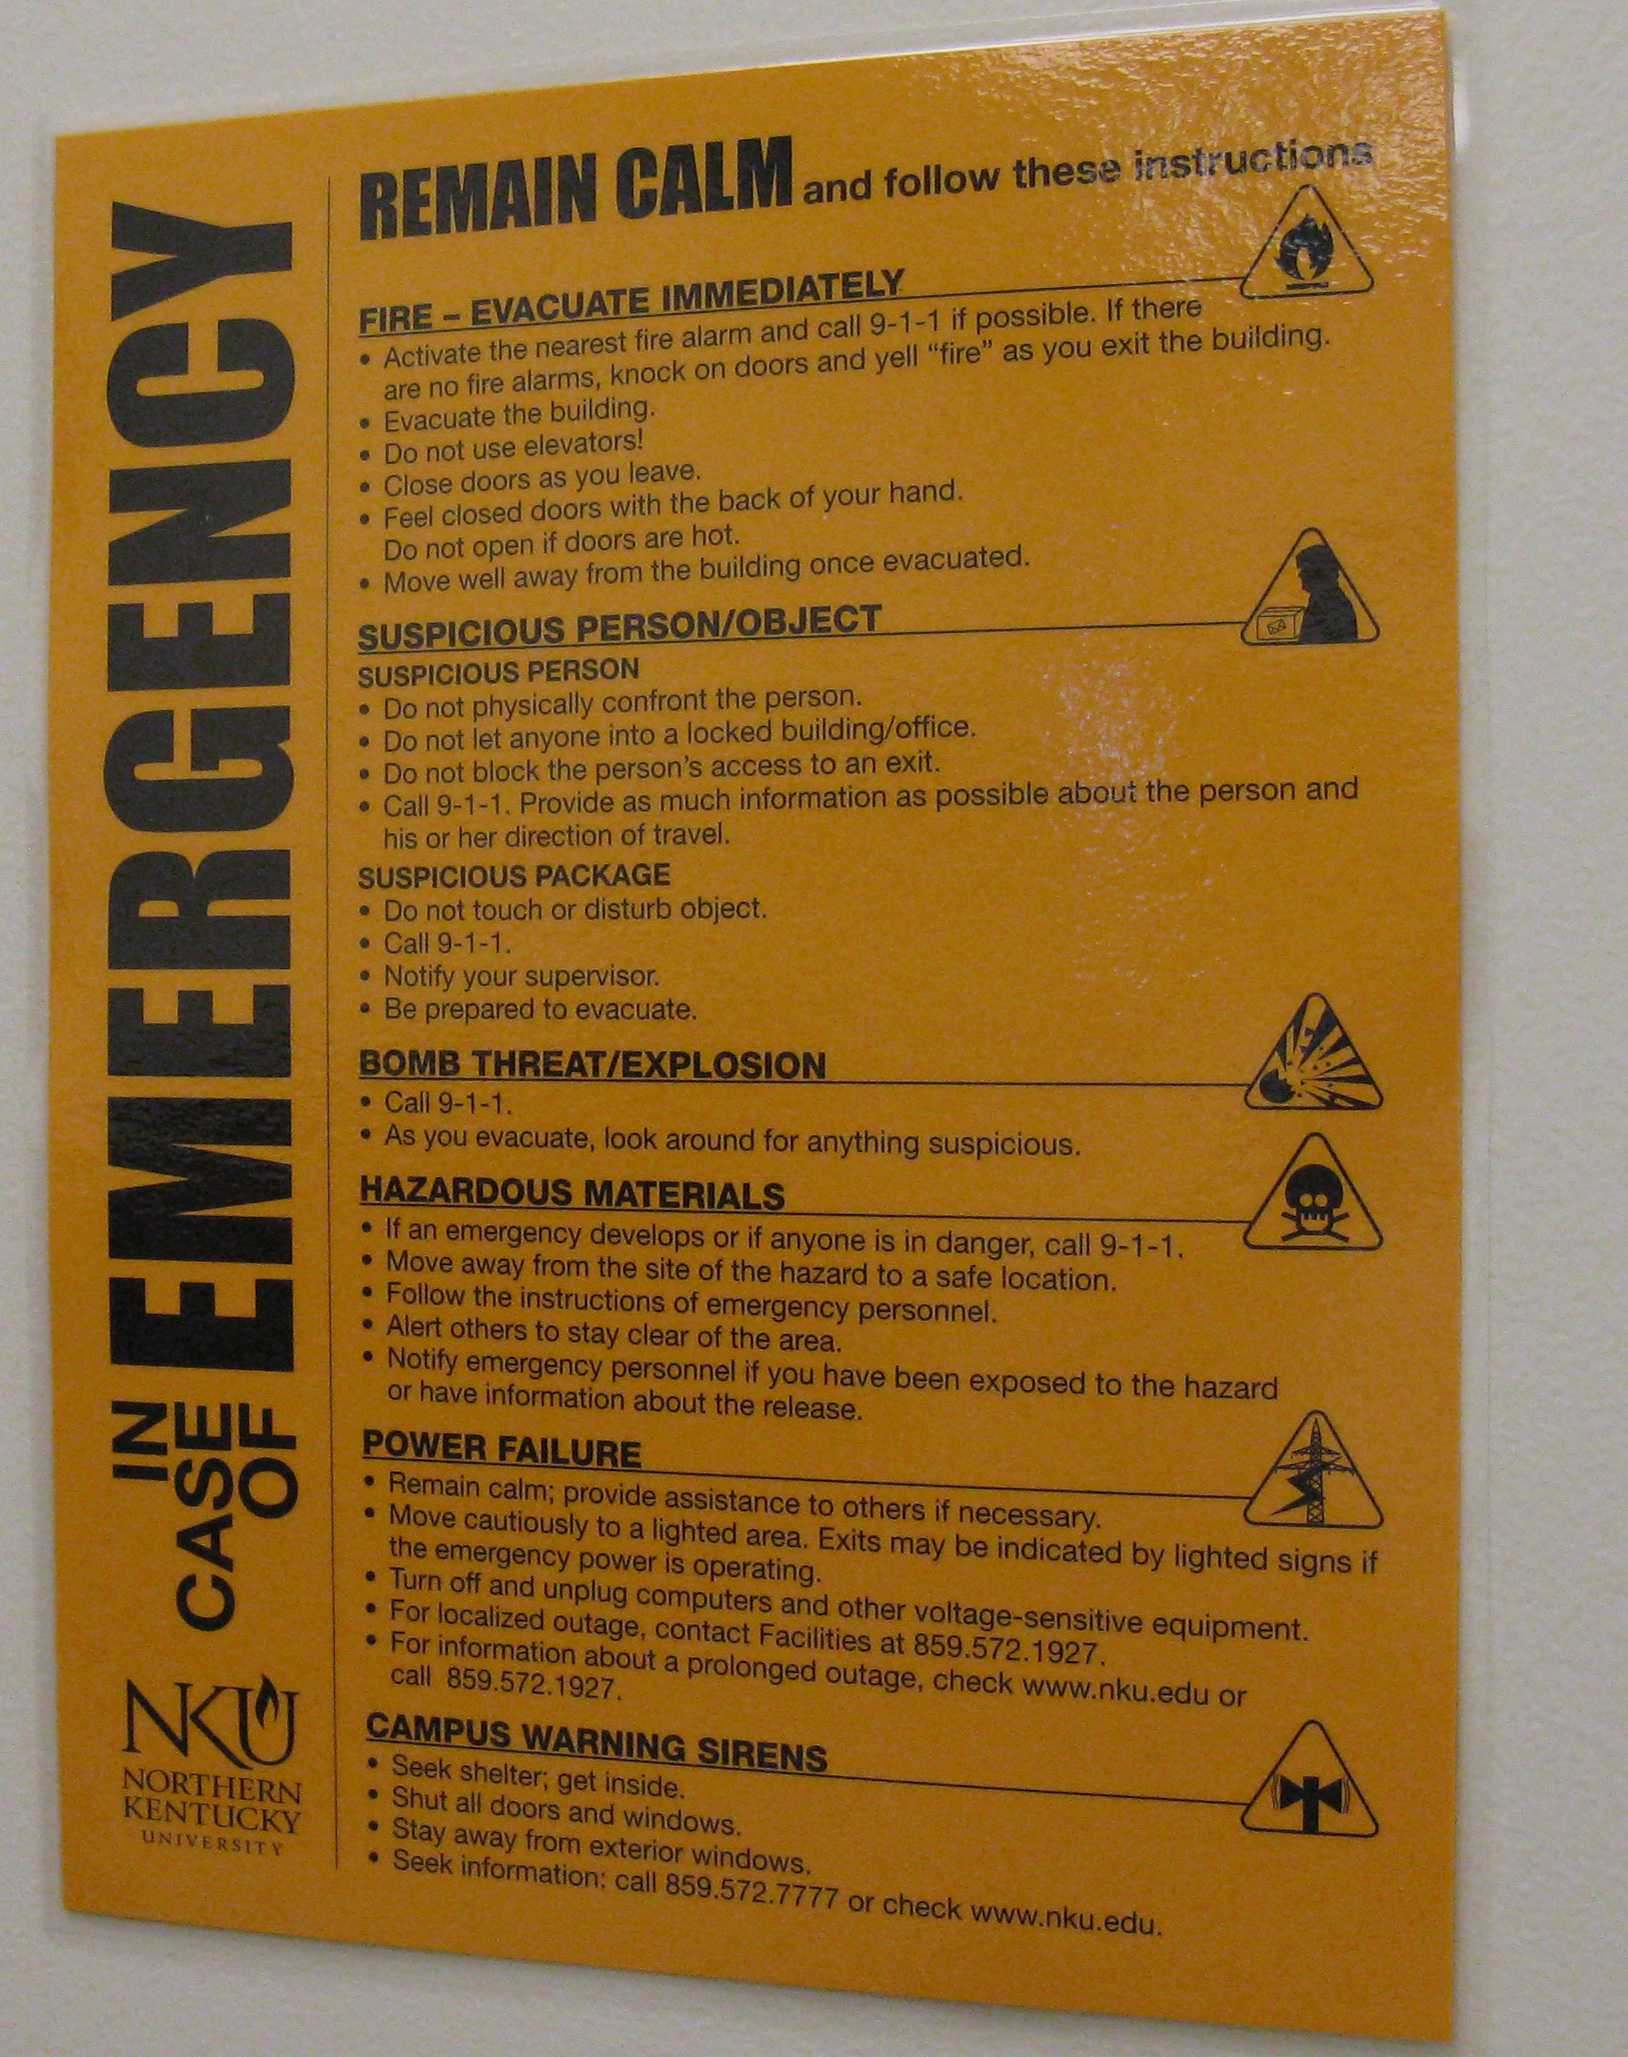 The emergency response signs posted throughout campus do not include specific instructions for a tornado threat, such as the advice to move to the lowest floor of the building. This information was also not communicated through the Norse Alert sirens when a tornado warning impacted the Northern Kentucky University campus on Oct. 28. Photo by Jesse Call.